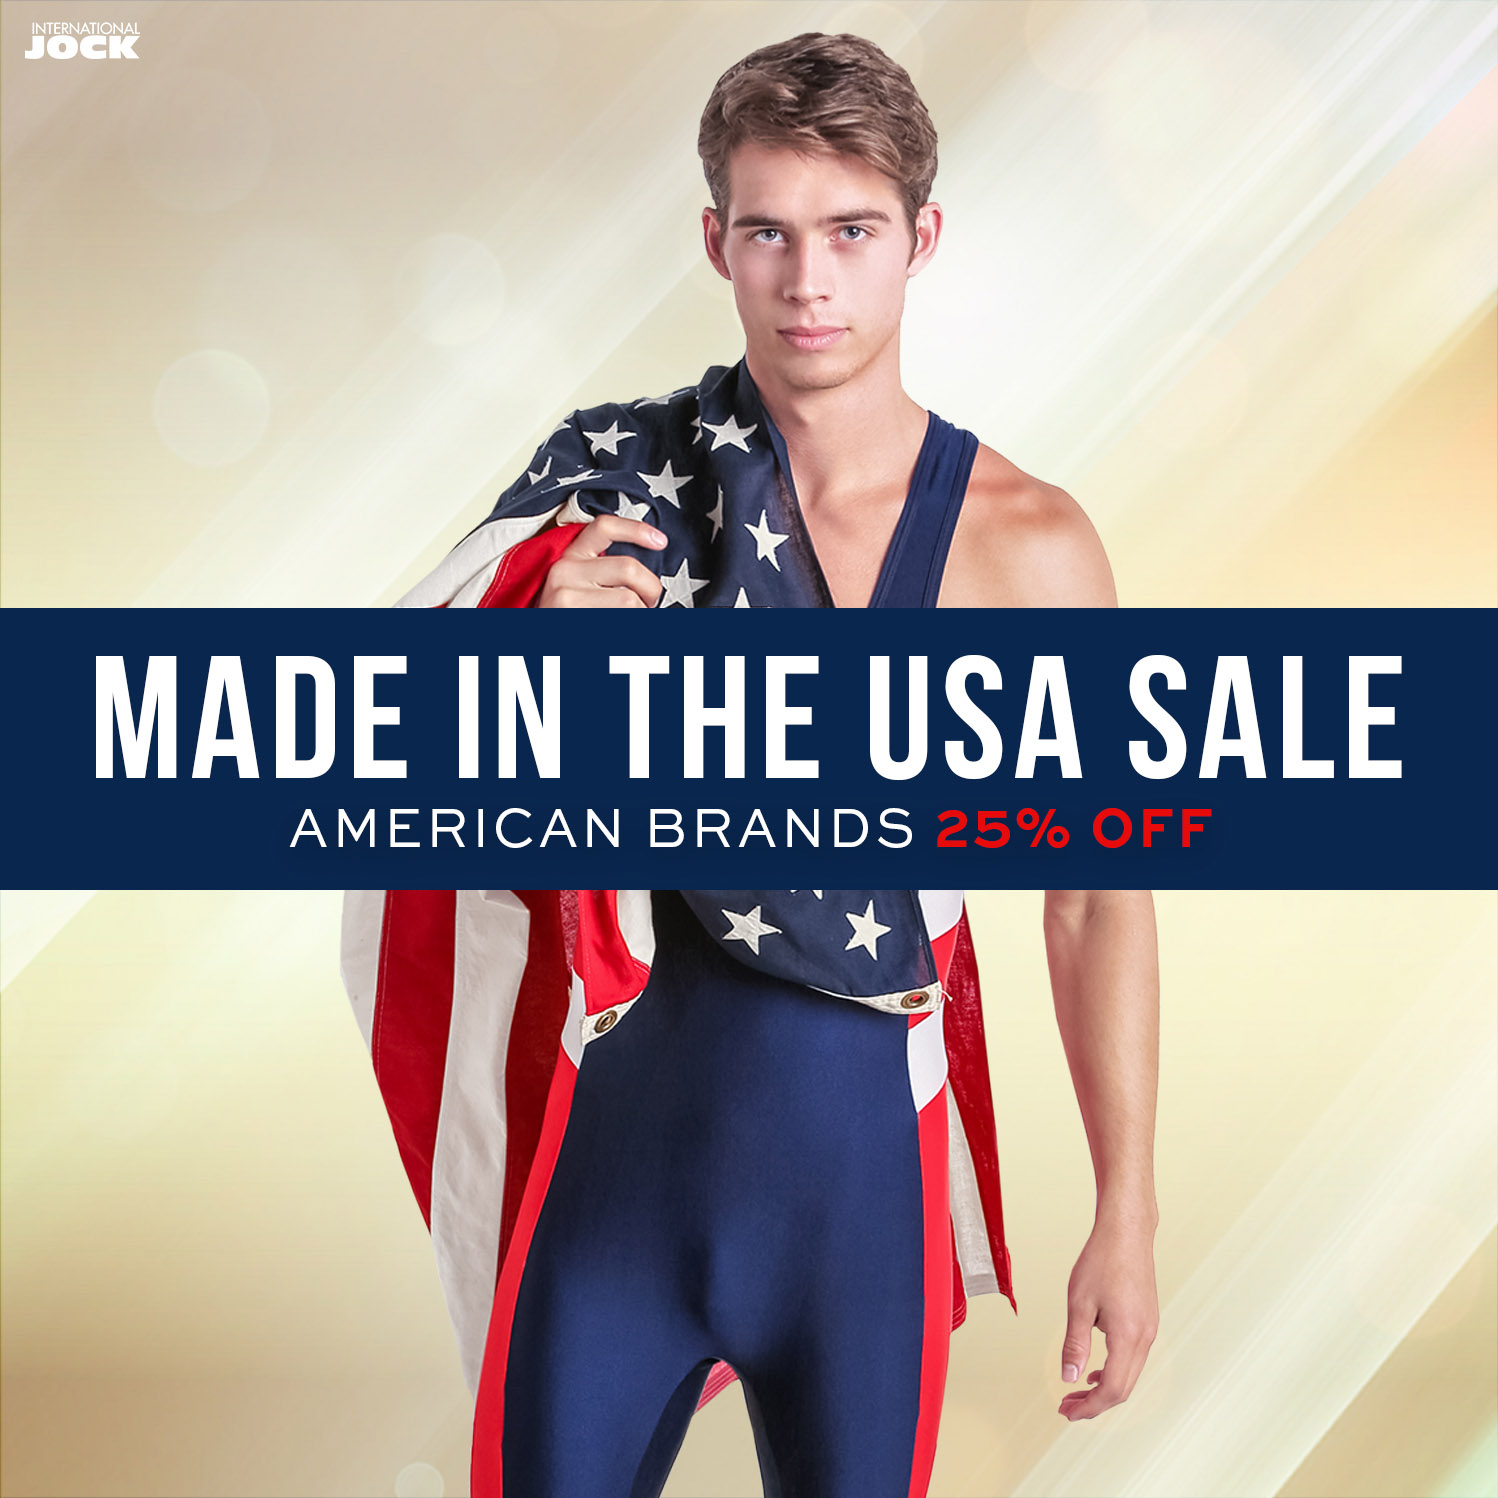 Made in the USA Sale at International Jock 00 (7)